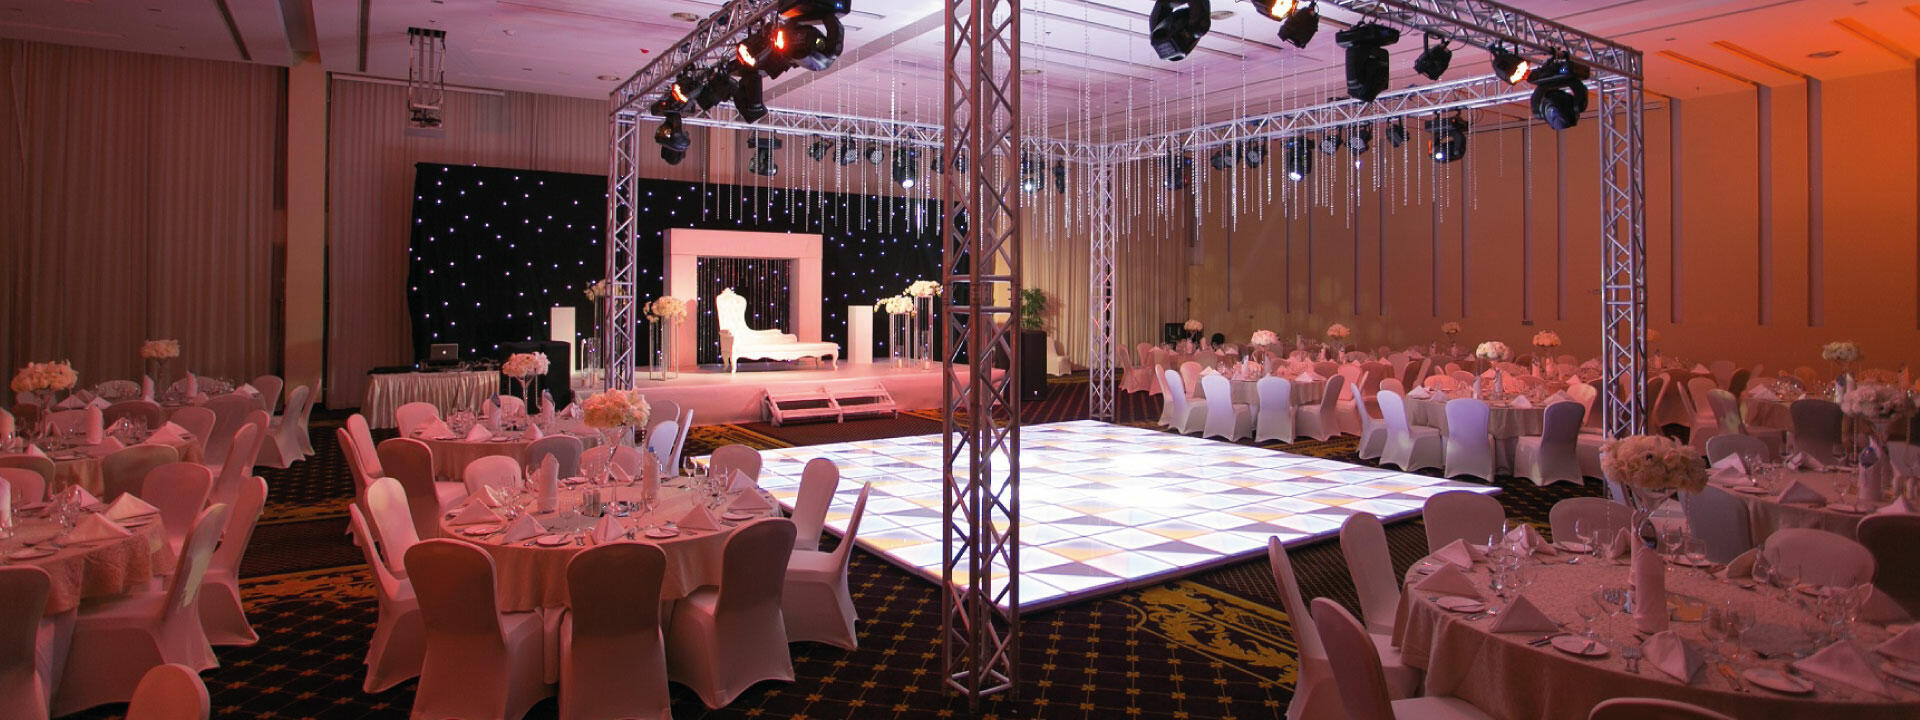 Weddings at Two Seasons Hotel & Apartments in Dubai